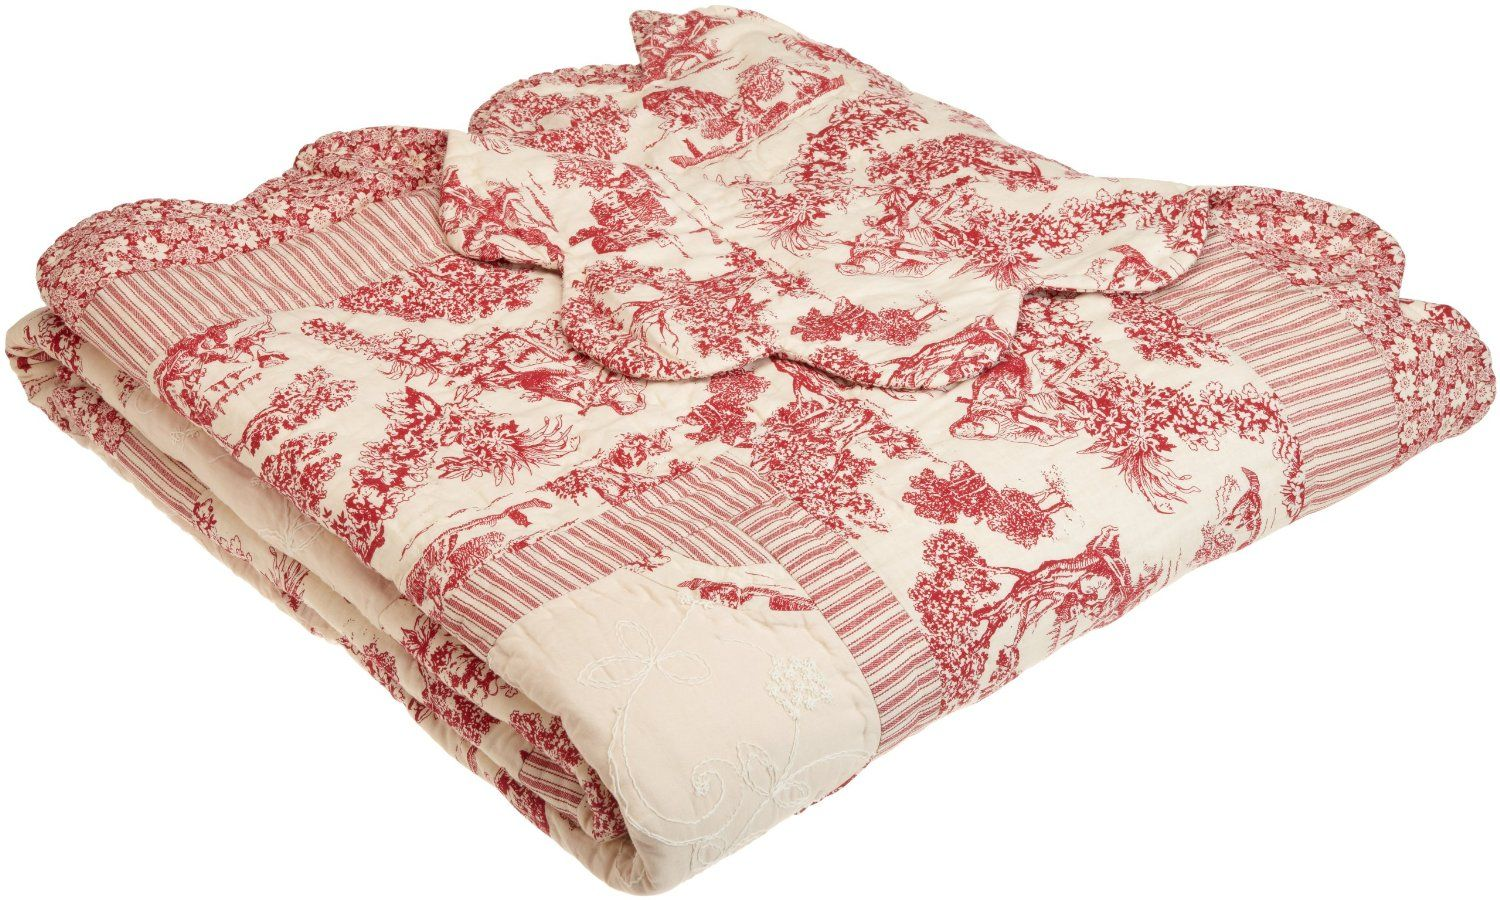 Red Toile Quilt Fabric Pattern Combination Ideas